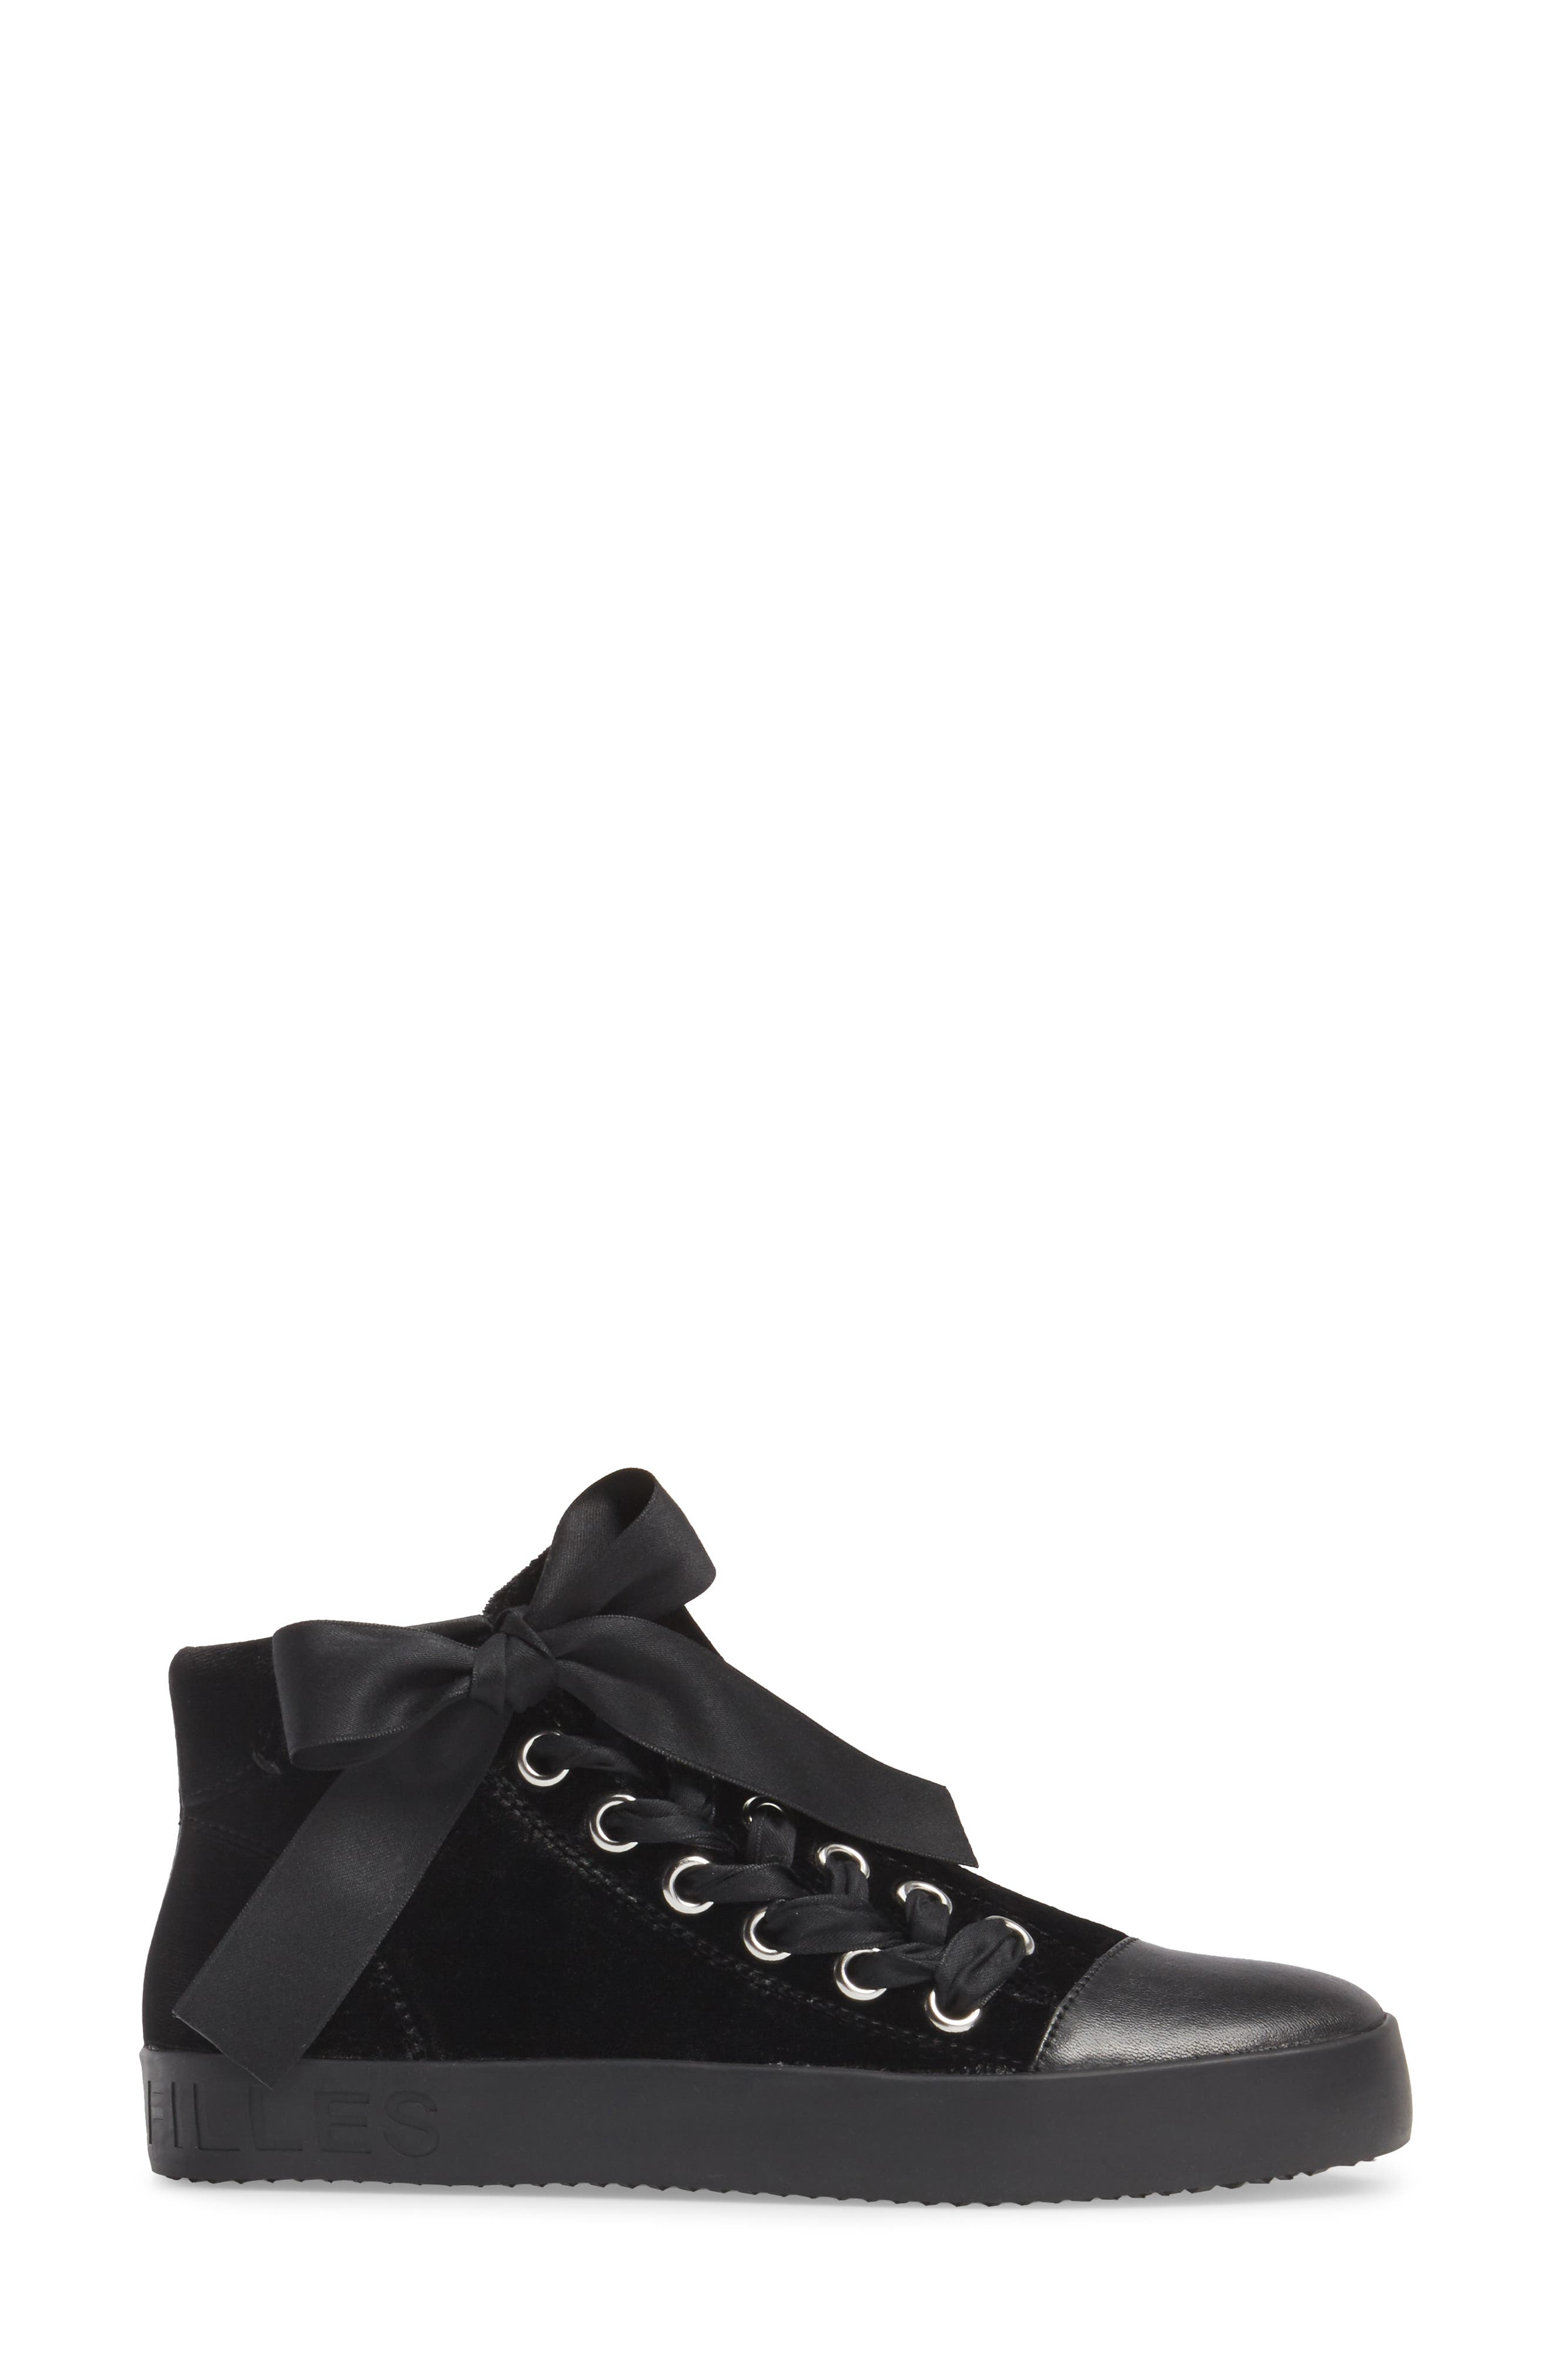 Valerie High Top Sneaker,                             Alternate thumbnail 3, color,                             Black Fabric\Leather